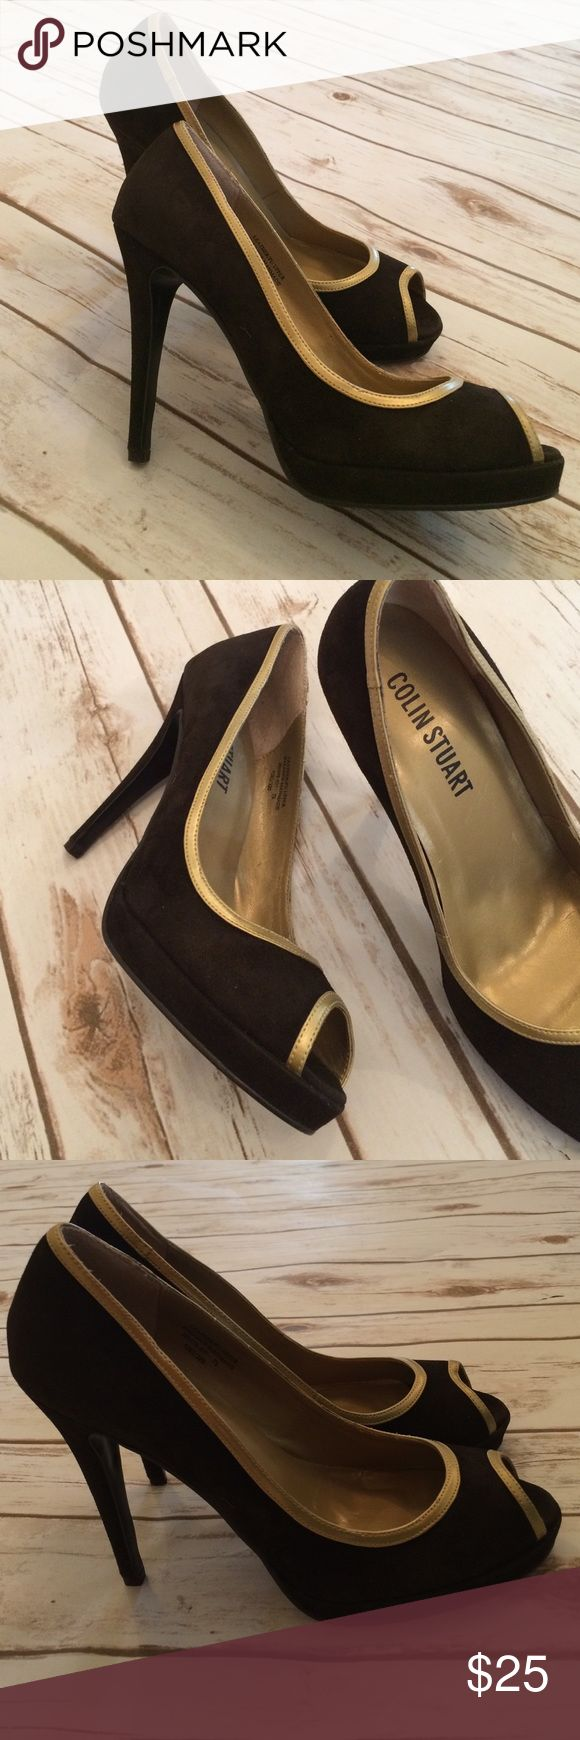 NEW Colin Stuart Black Suede Peep Toe Pumps Never Worn black suede pumps with metallic gold trim. Made with a leather upper and man-made balance. The heel is 4 1/2 inches and there is an 1/2 inch platform underneath. Colin Stuart Shoes Heels